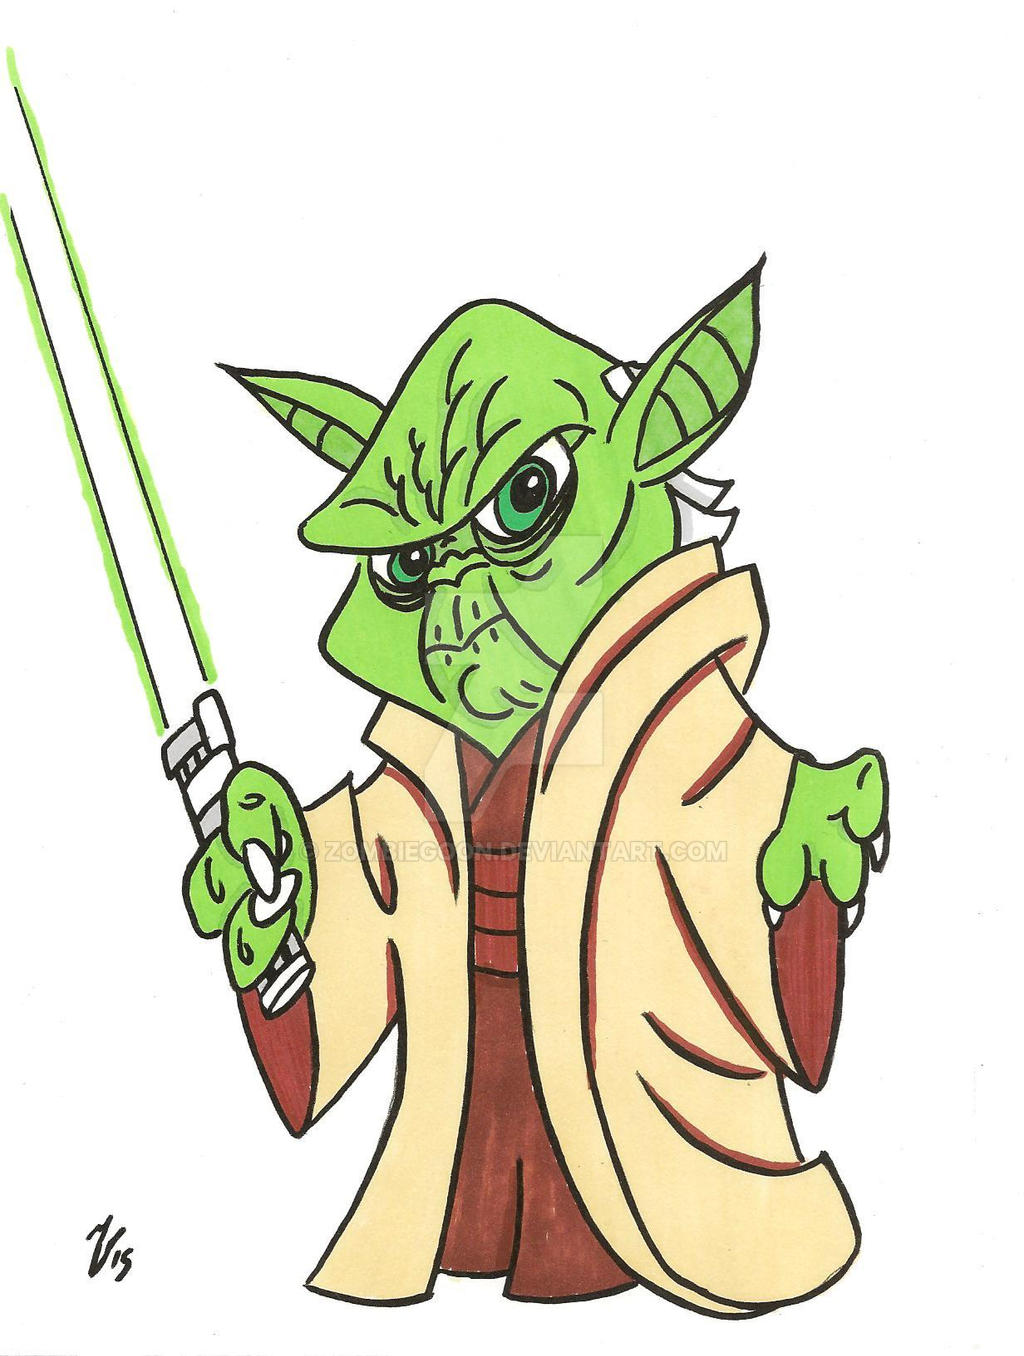 Yoda animated by zombiegoon on DeviantArt